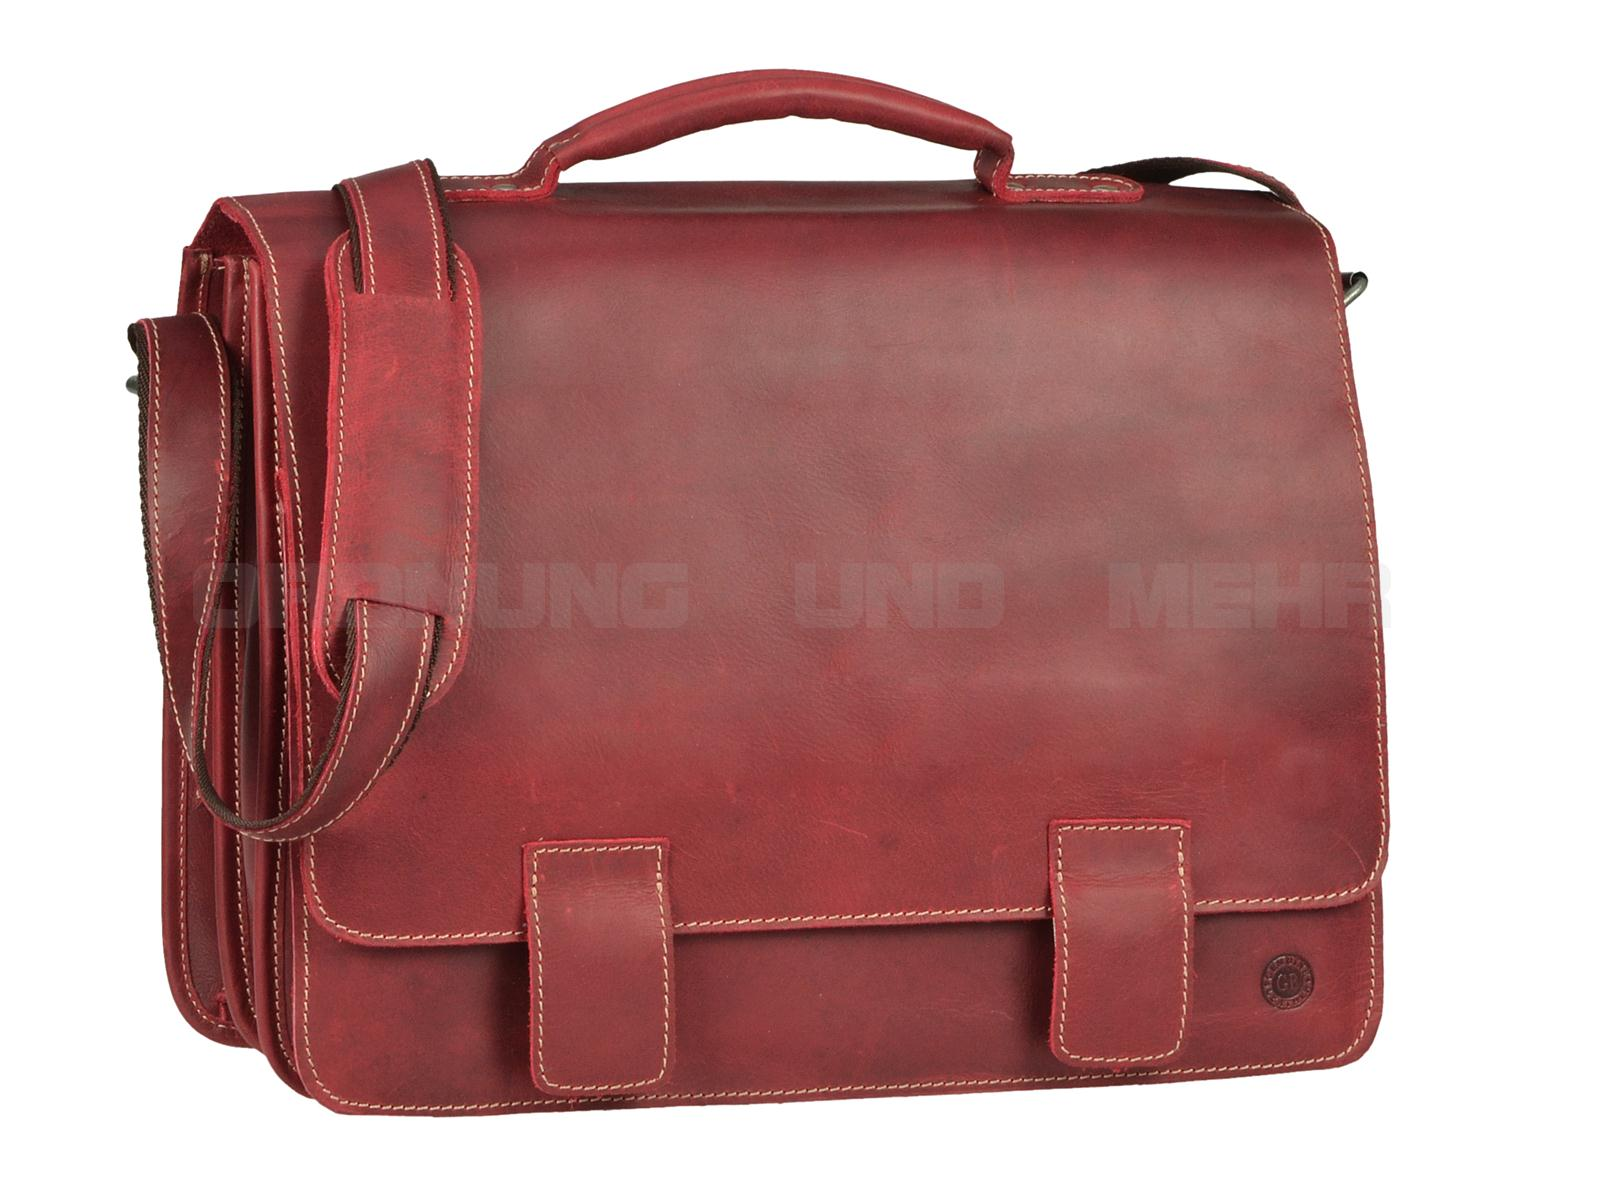 Greenburry Buffalo Ledertasche rot 1029